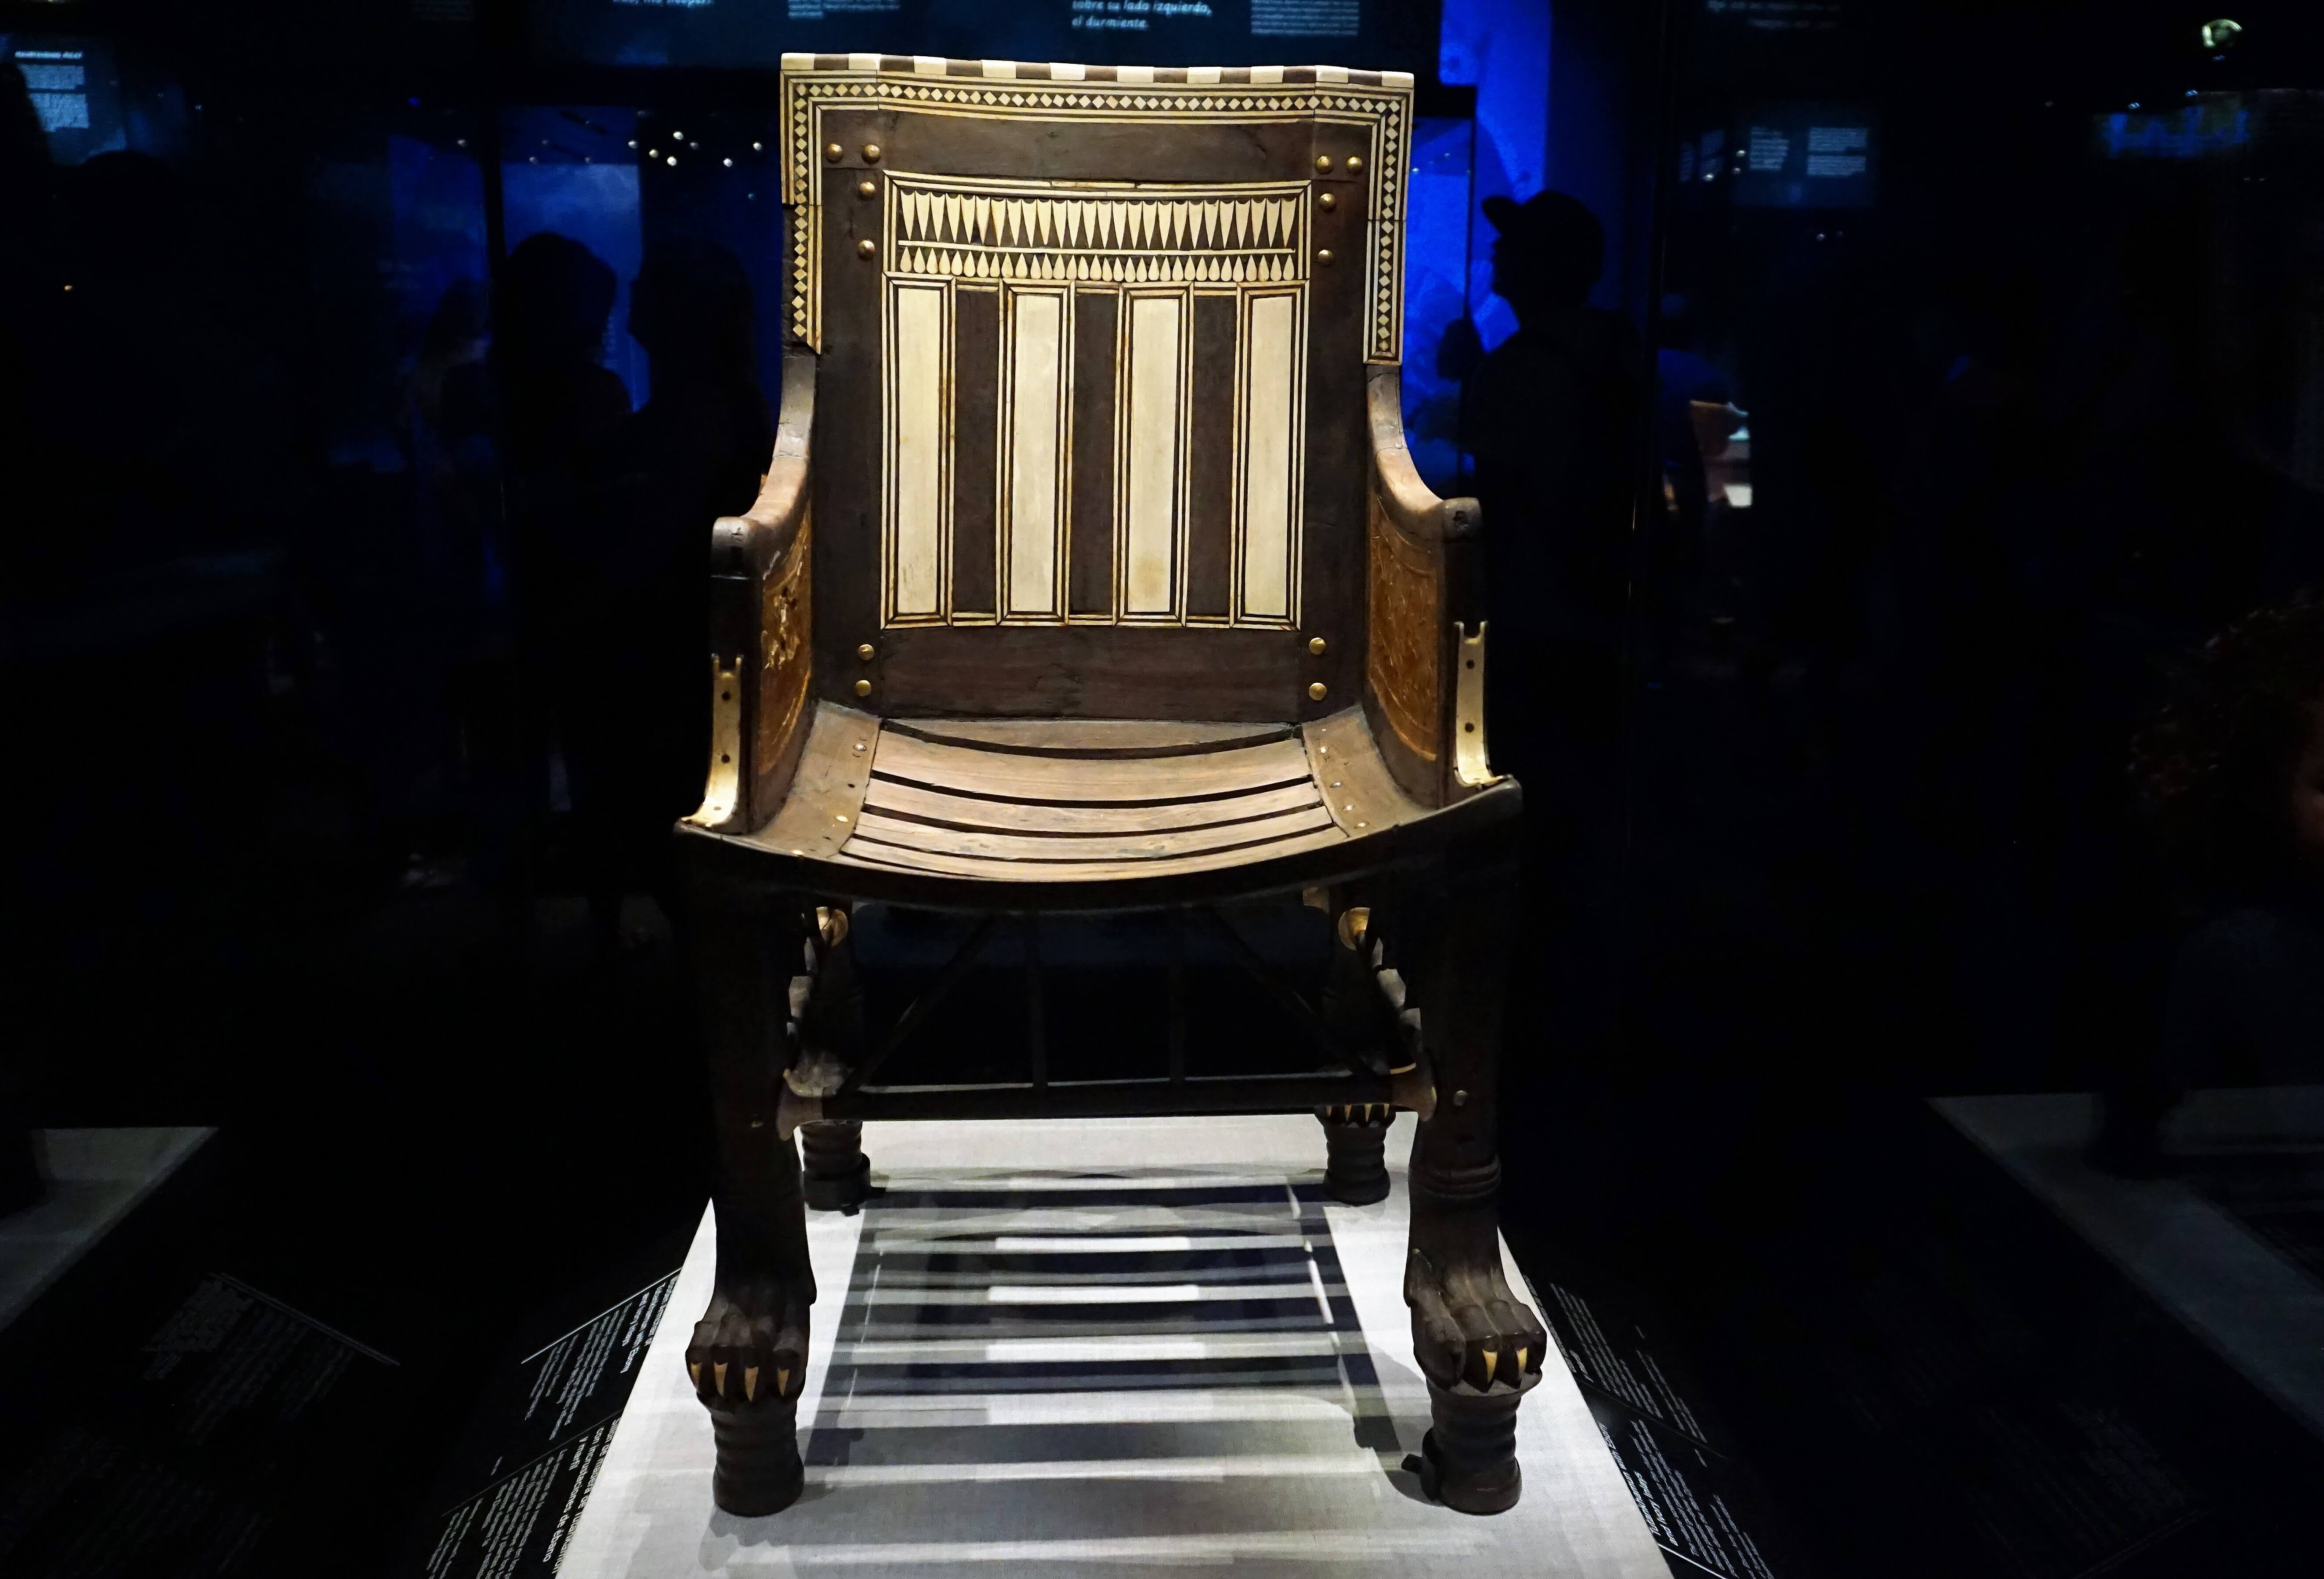 King Tut's chair displayed at California Science Center Los Angeles